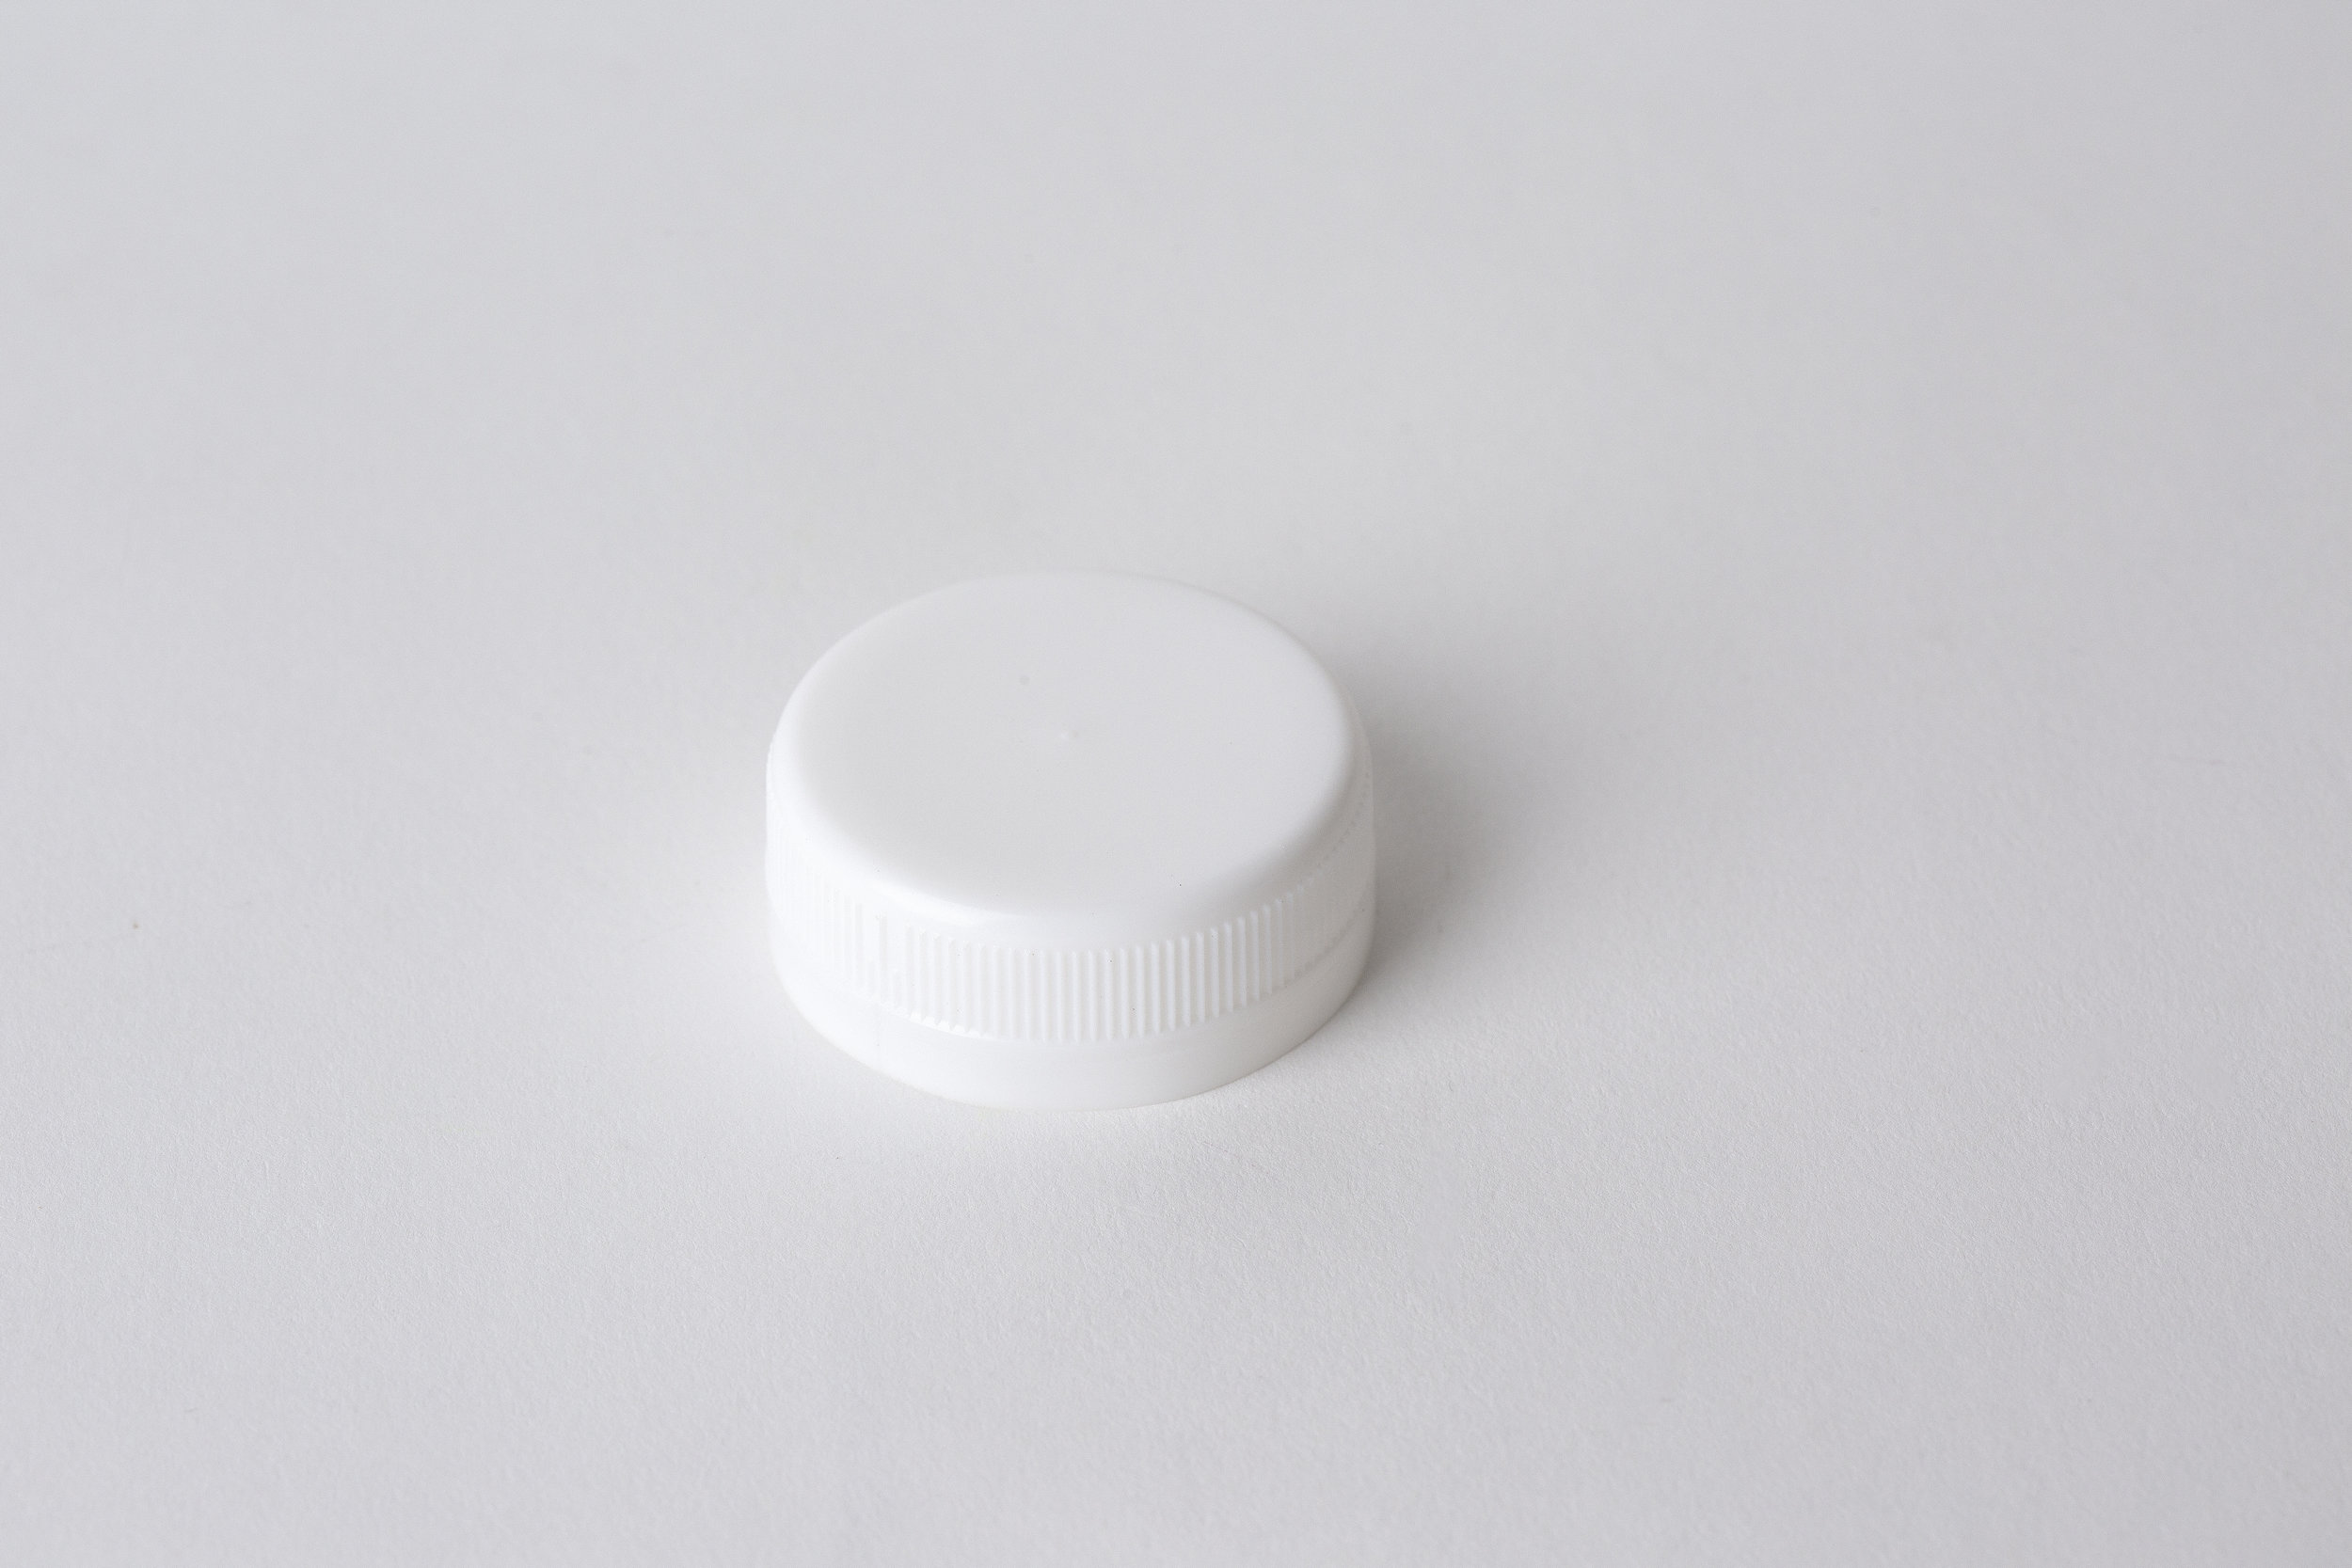 Double Seal Cap  To fully safeguard your product, our HPP-compliant bottles use a double seal cap, consisting of an inner and outer seal, for superior closure performance.